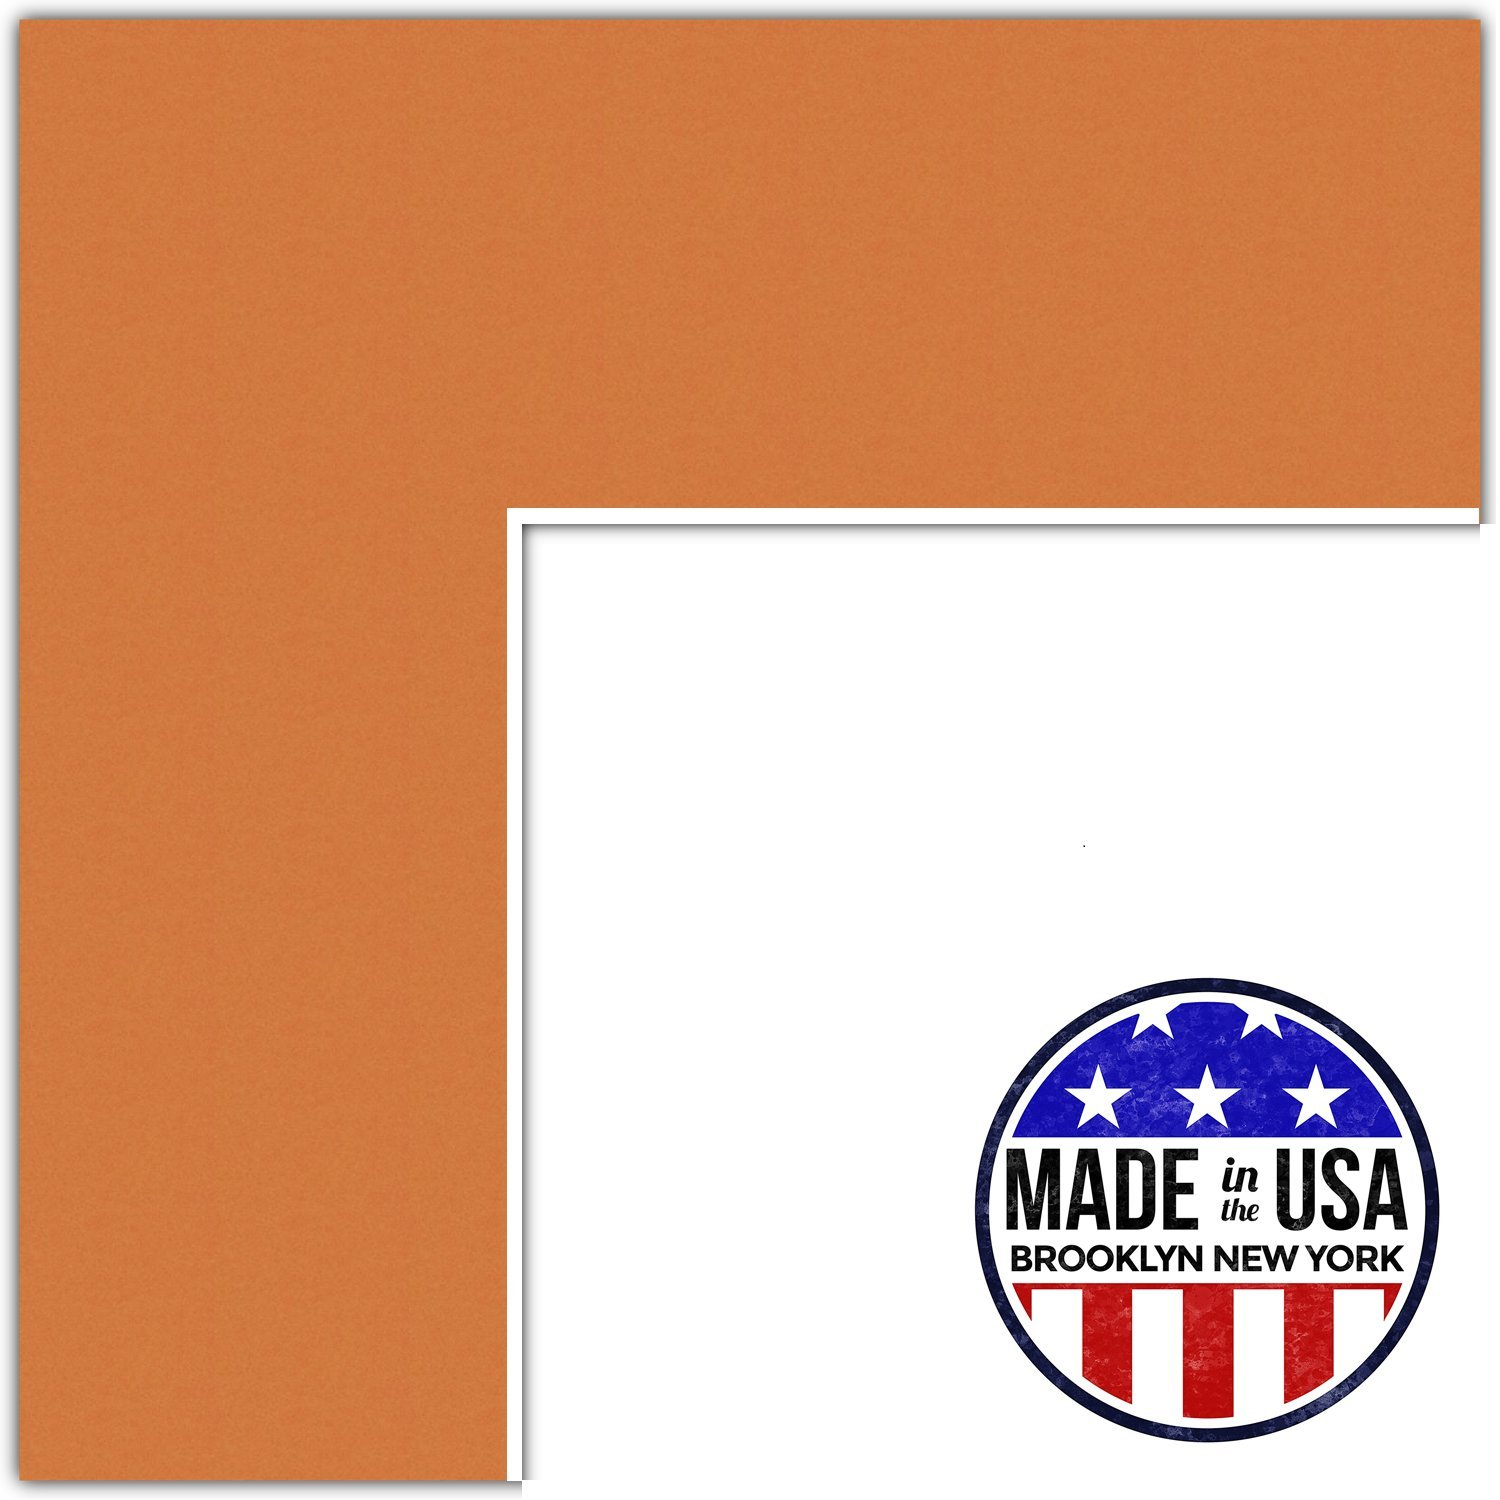 19x34 Tangerine/Octoberfest Custom Mat for Picture Frame with 15x30 opening size (Mat Only, Frame NOT Included)